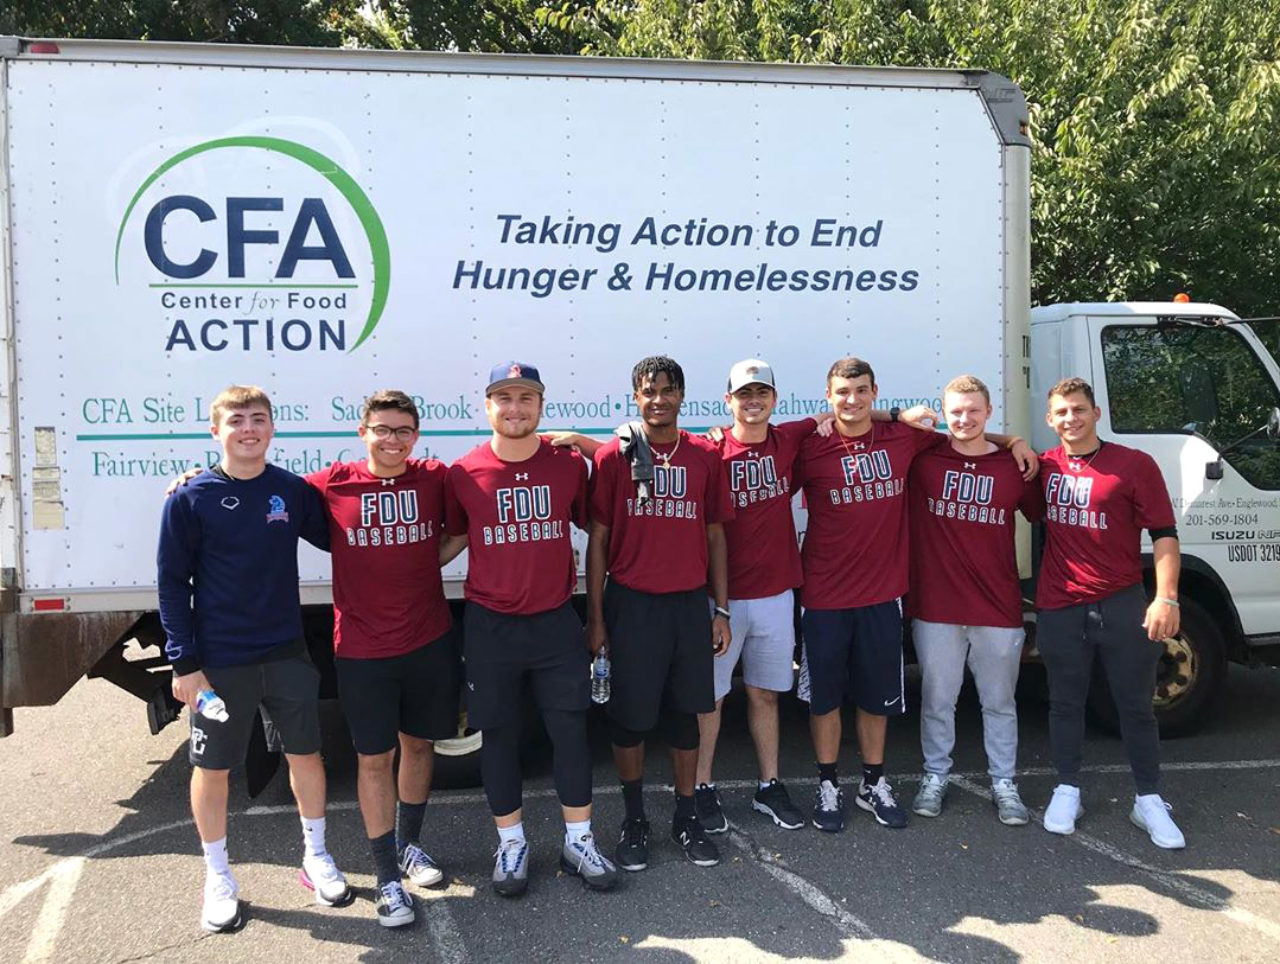 """Knights baseball players pose in front of a truck that reads, """"CFA Center for Food Action. Taking Action to End Hunger & Homelessness."""""""